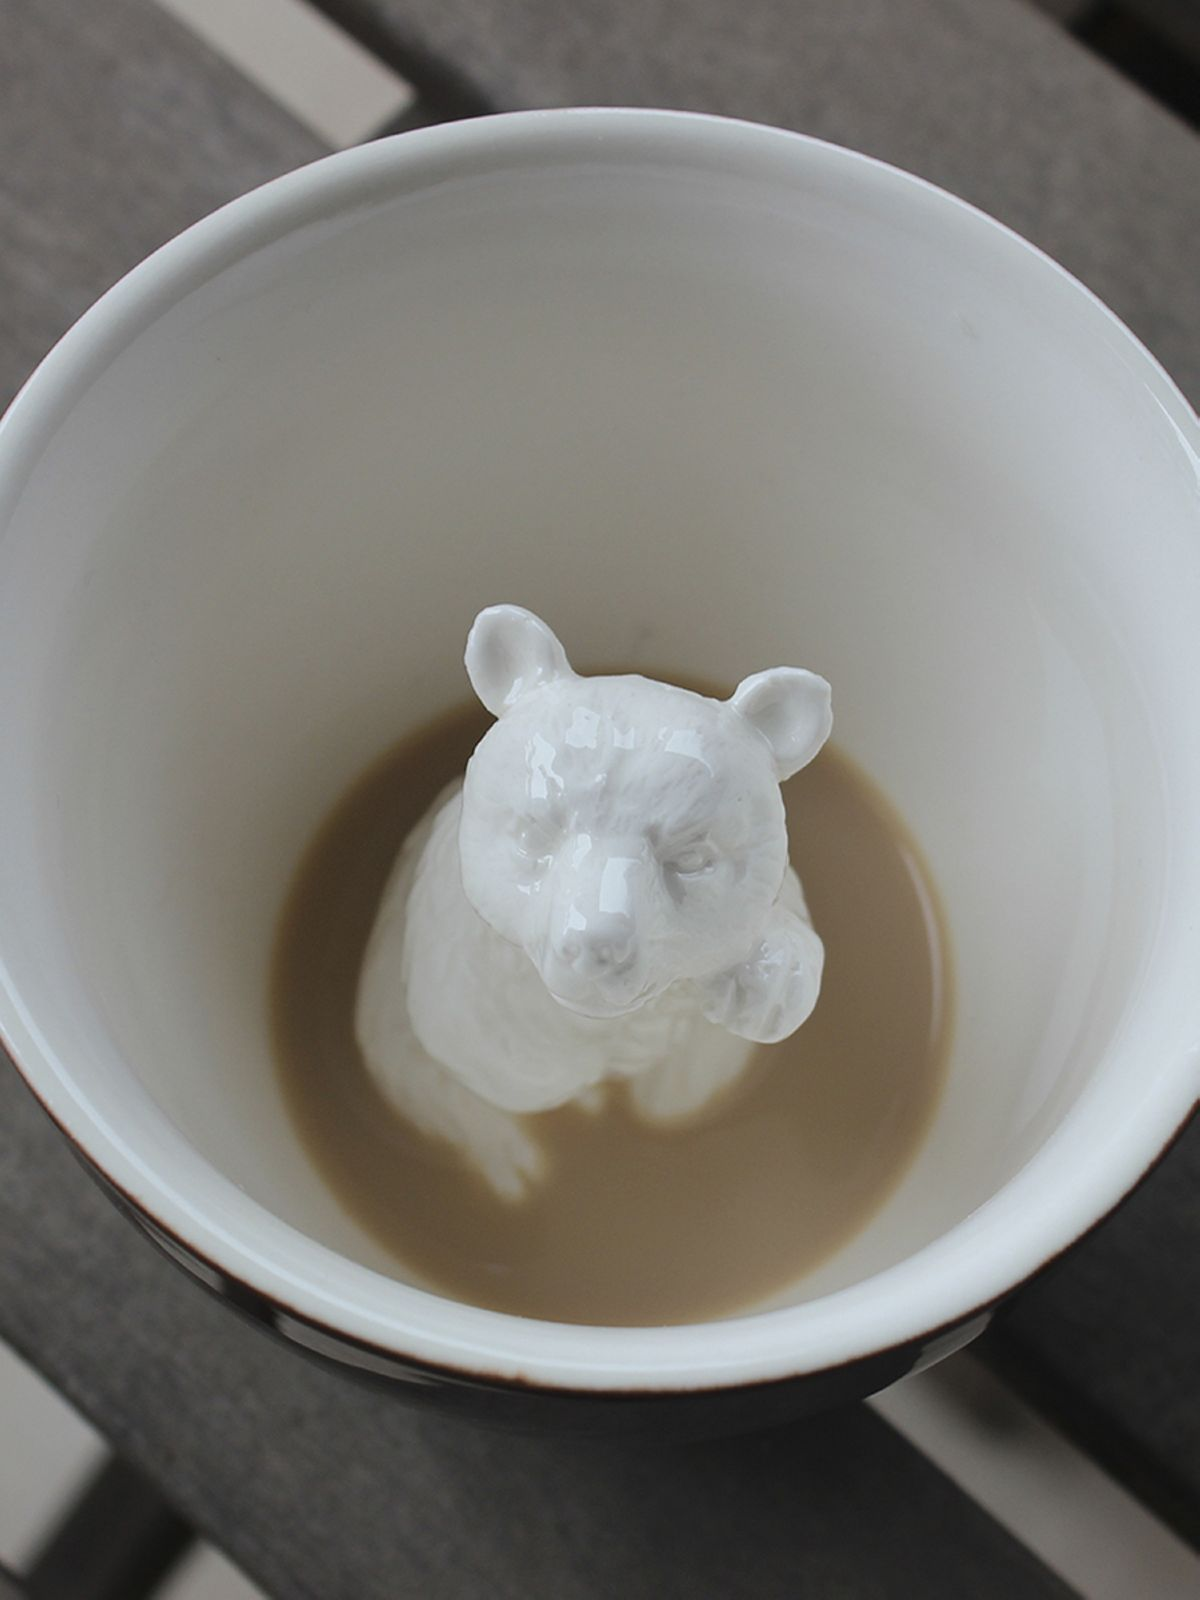 Пинкл (Pinkl) | Кружка с медведем | Creature Cups Bear